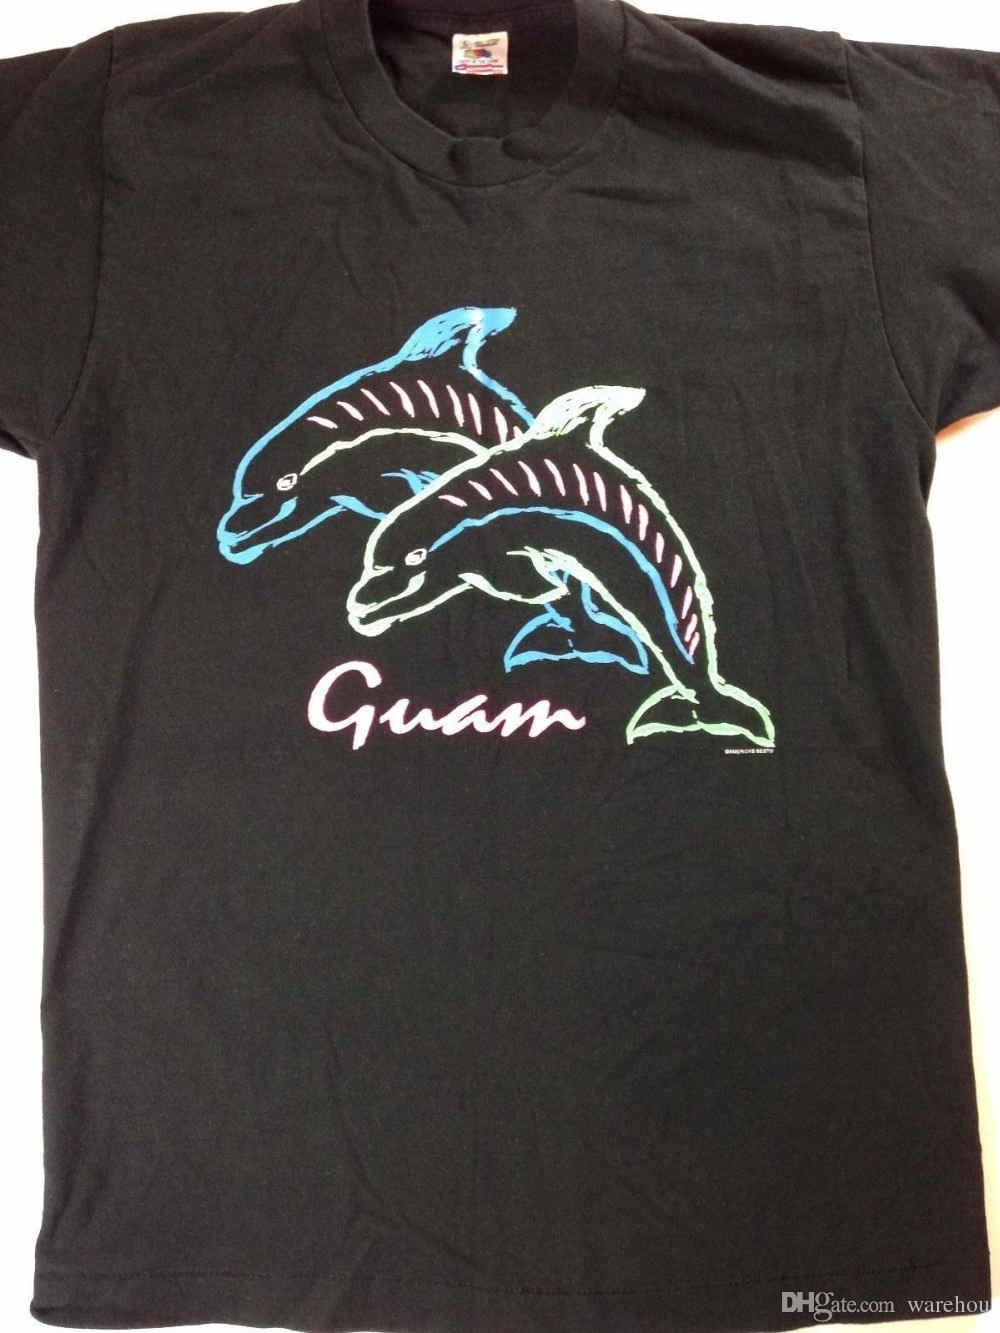 Neon Dolphins T Shirt VTG Guam Mens Large Fruit Of The Loom USA Made 90s Cotton Newest Funny Really Cool Sweatshirts Following Shirts From Liguo0027